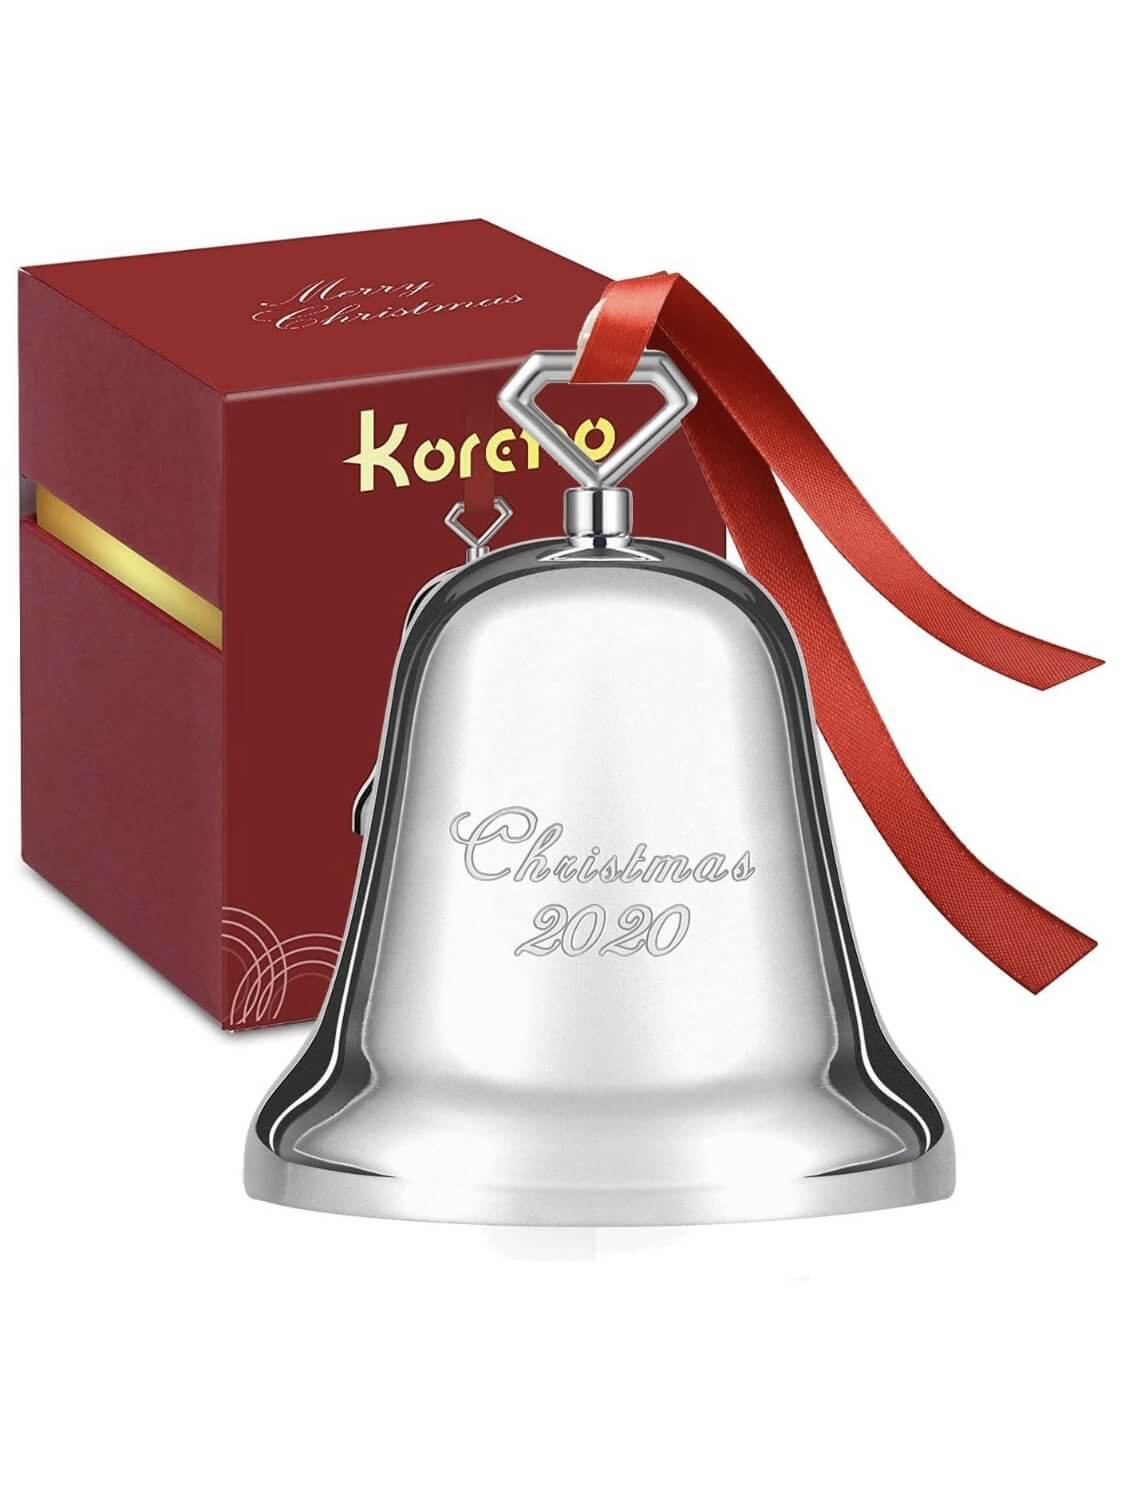 Light nickel-plated solid metal Christmas bell.